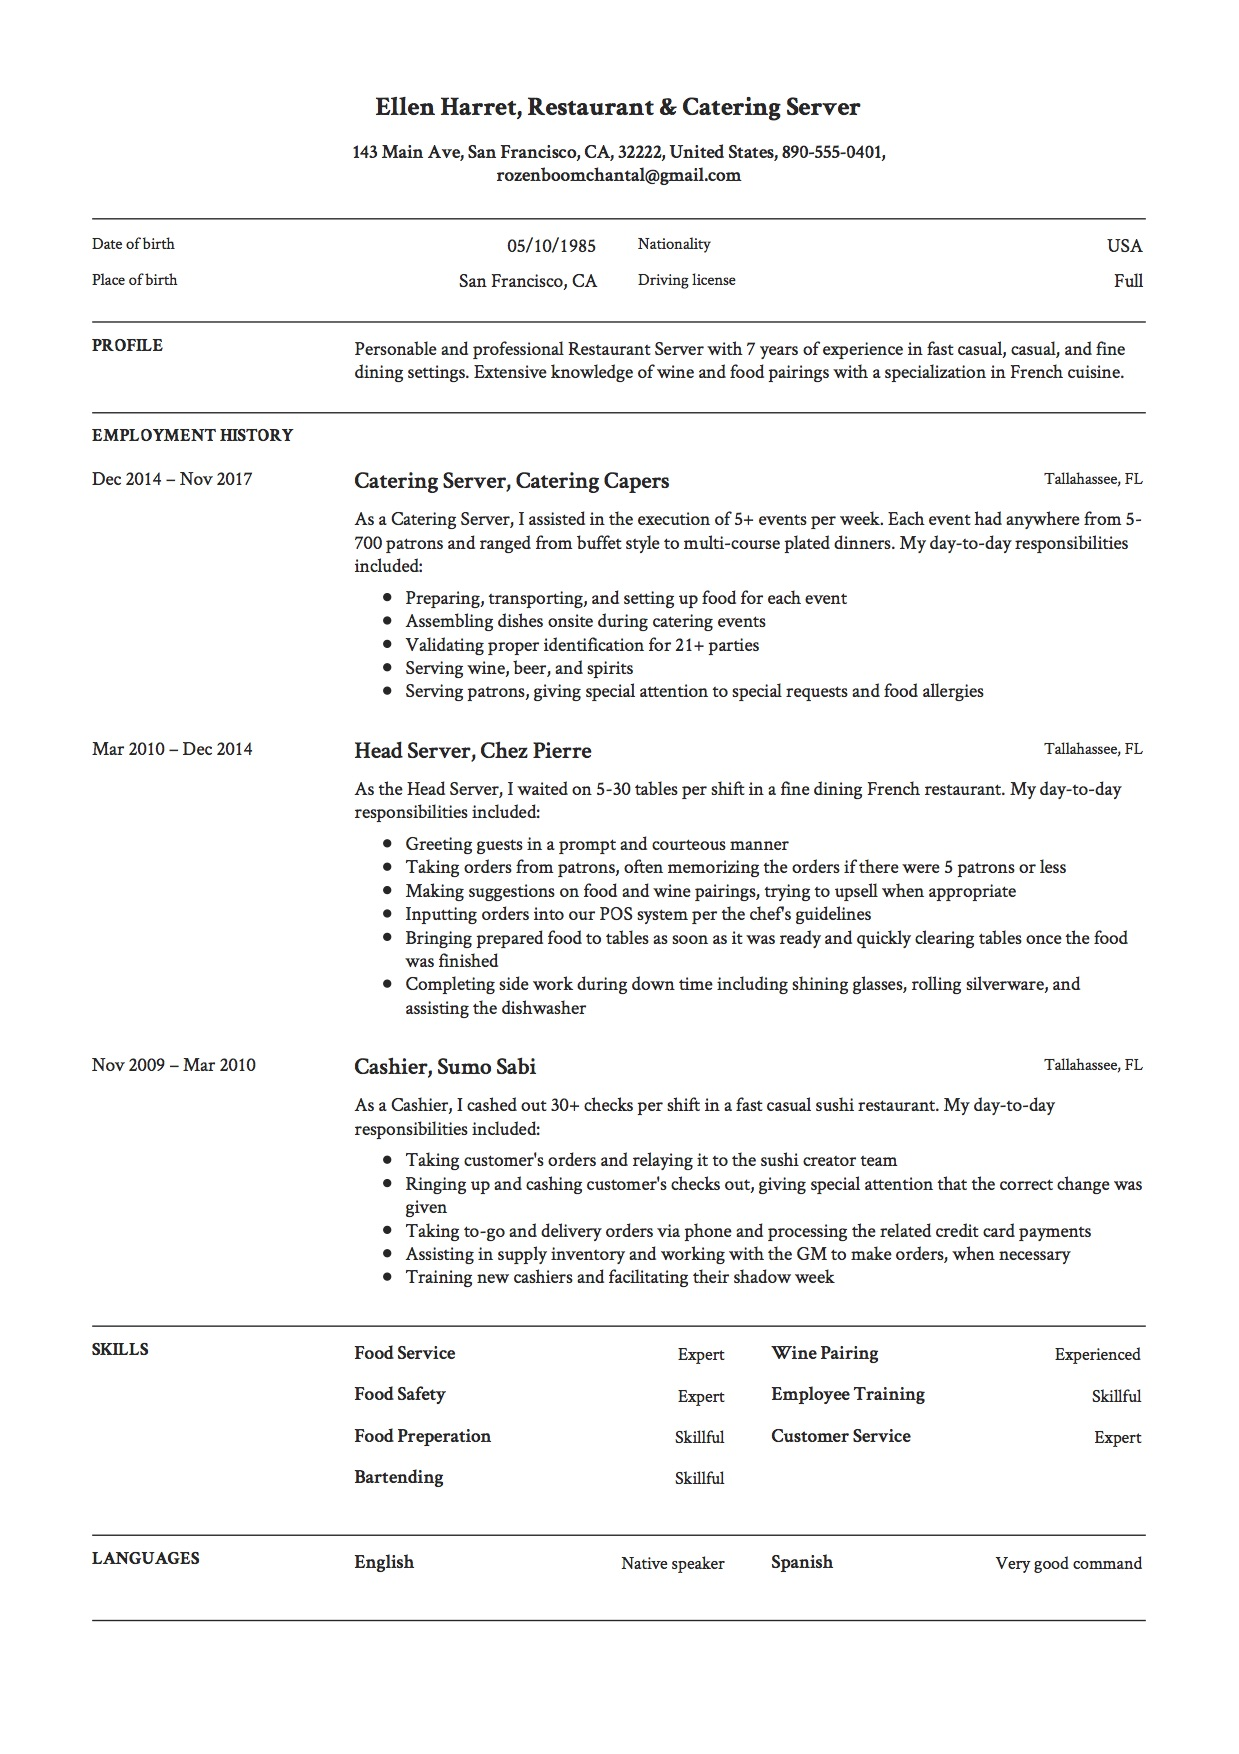 Resume Sample Restaurant Catering Server Esume Example